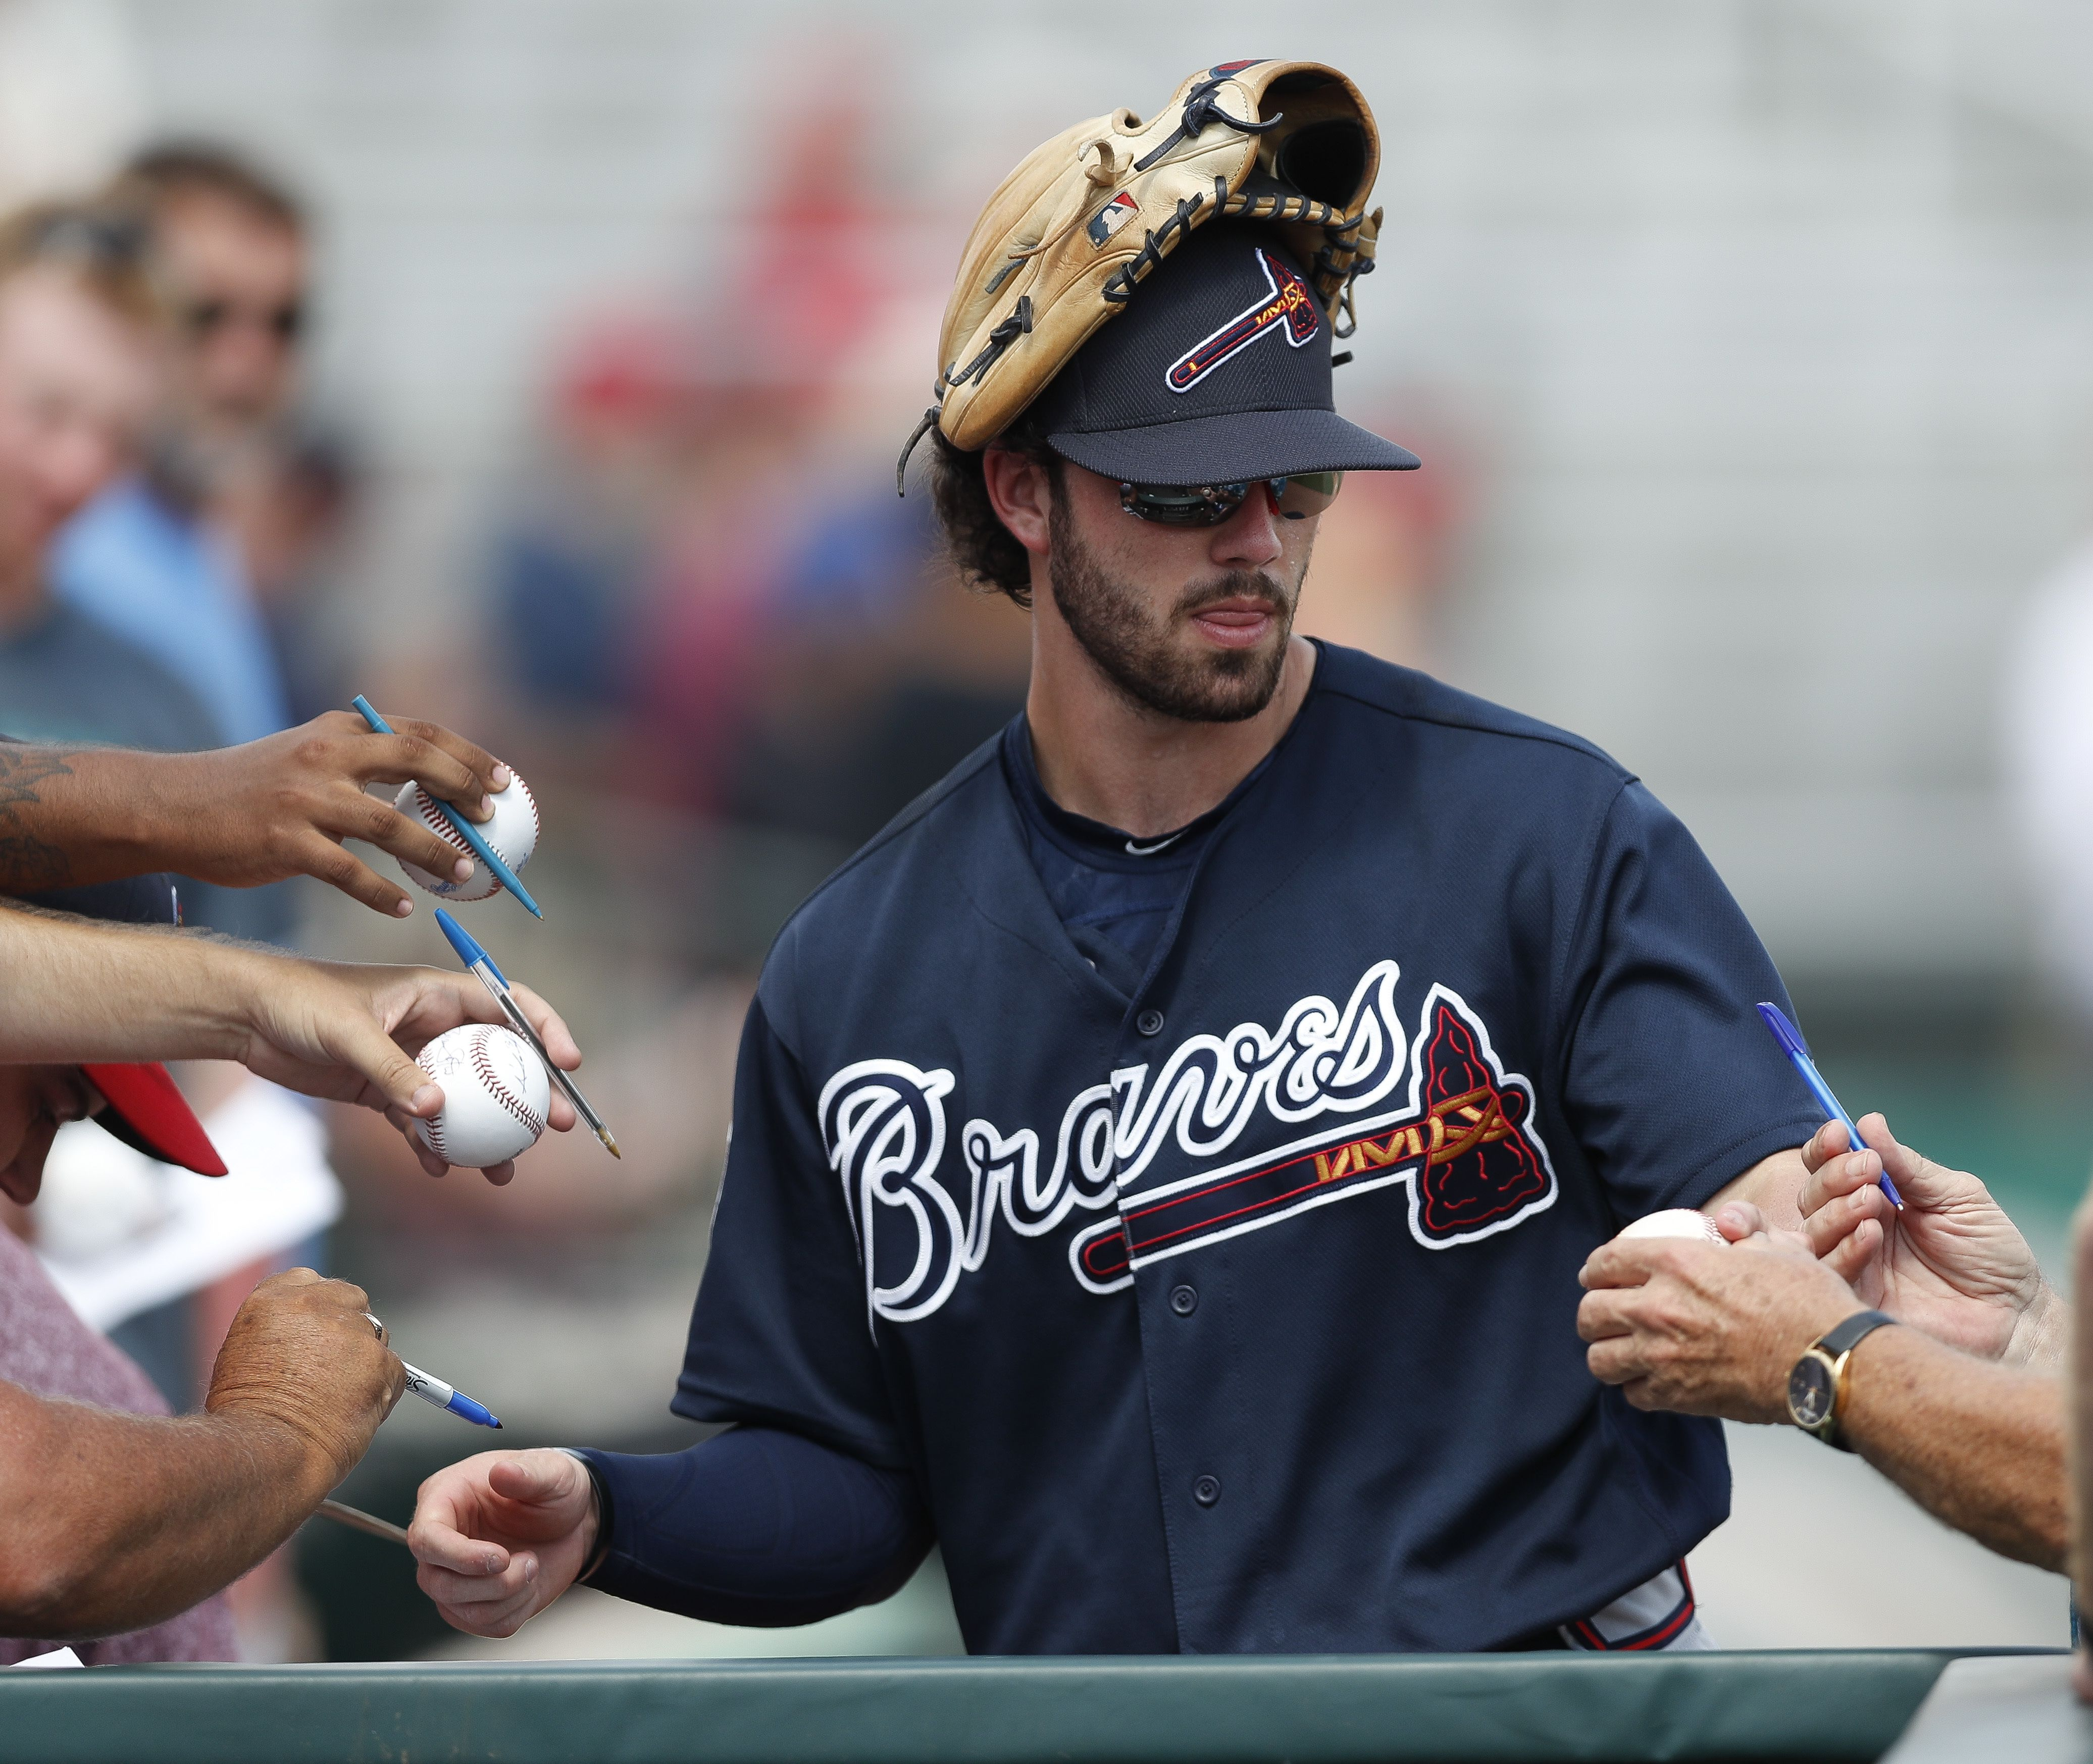 Atlanta Braves Shortstop Dansby Swanson Signs Autographs Before A Spring Training Baseball Game Agai Atlanta Braves Dansby Swanson Baseball Jersey Outfit Women